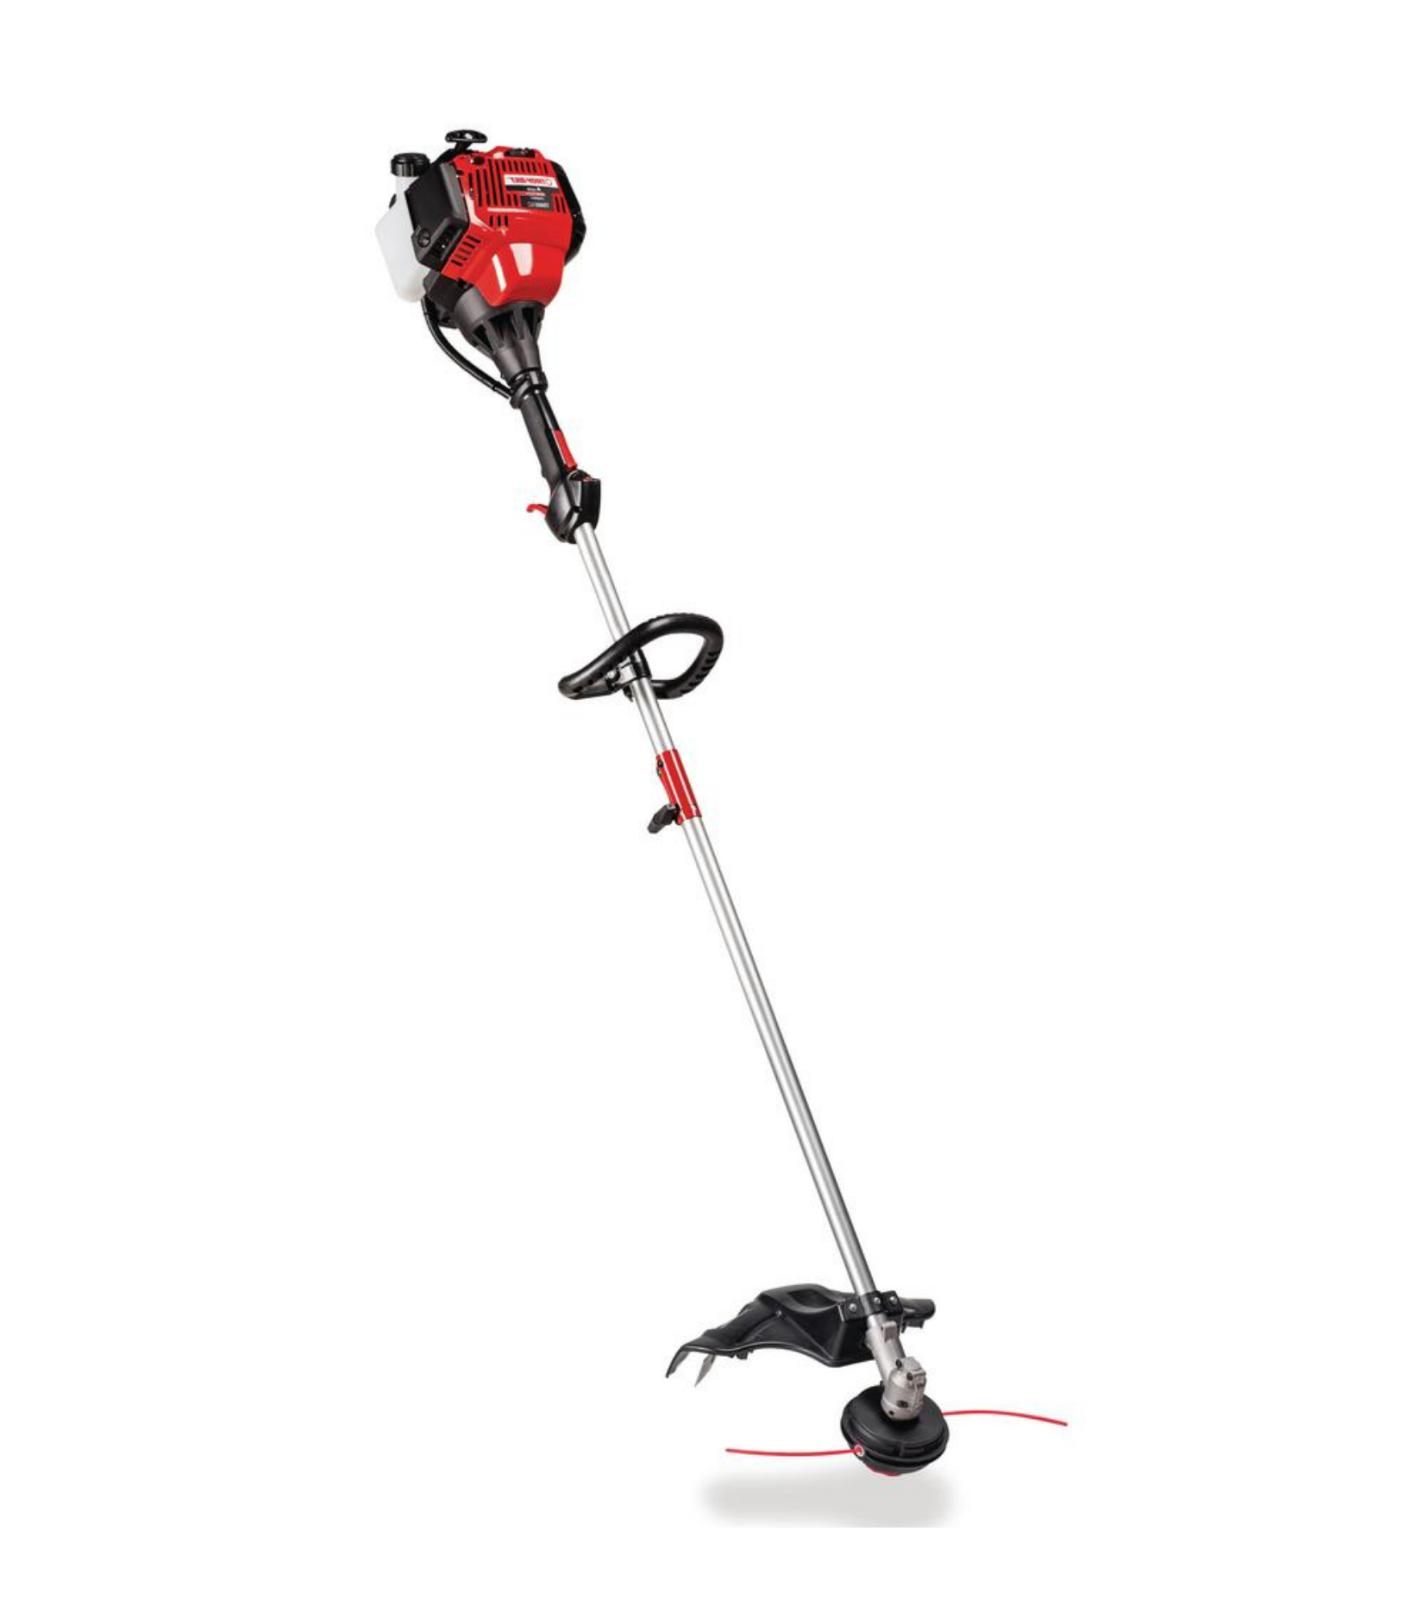 Straight Shaft Trimmer Weed Eater CC Wacker